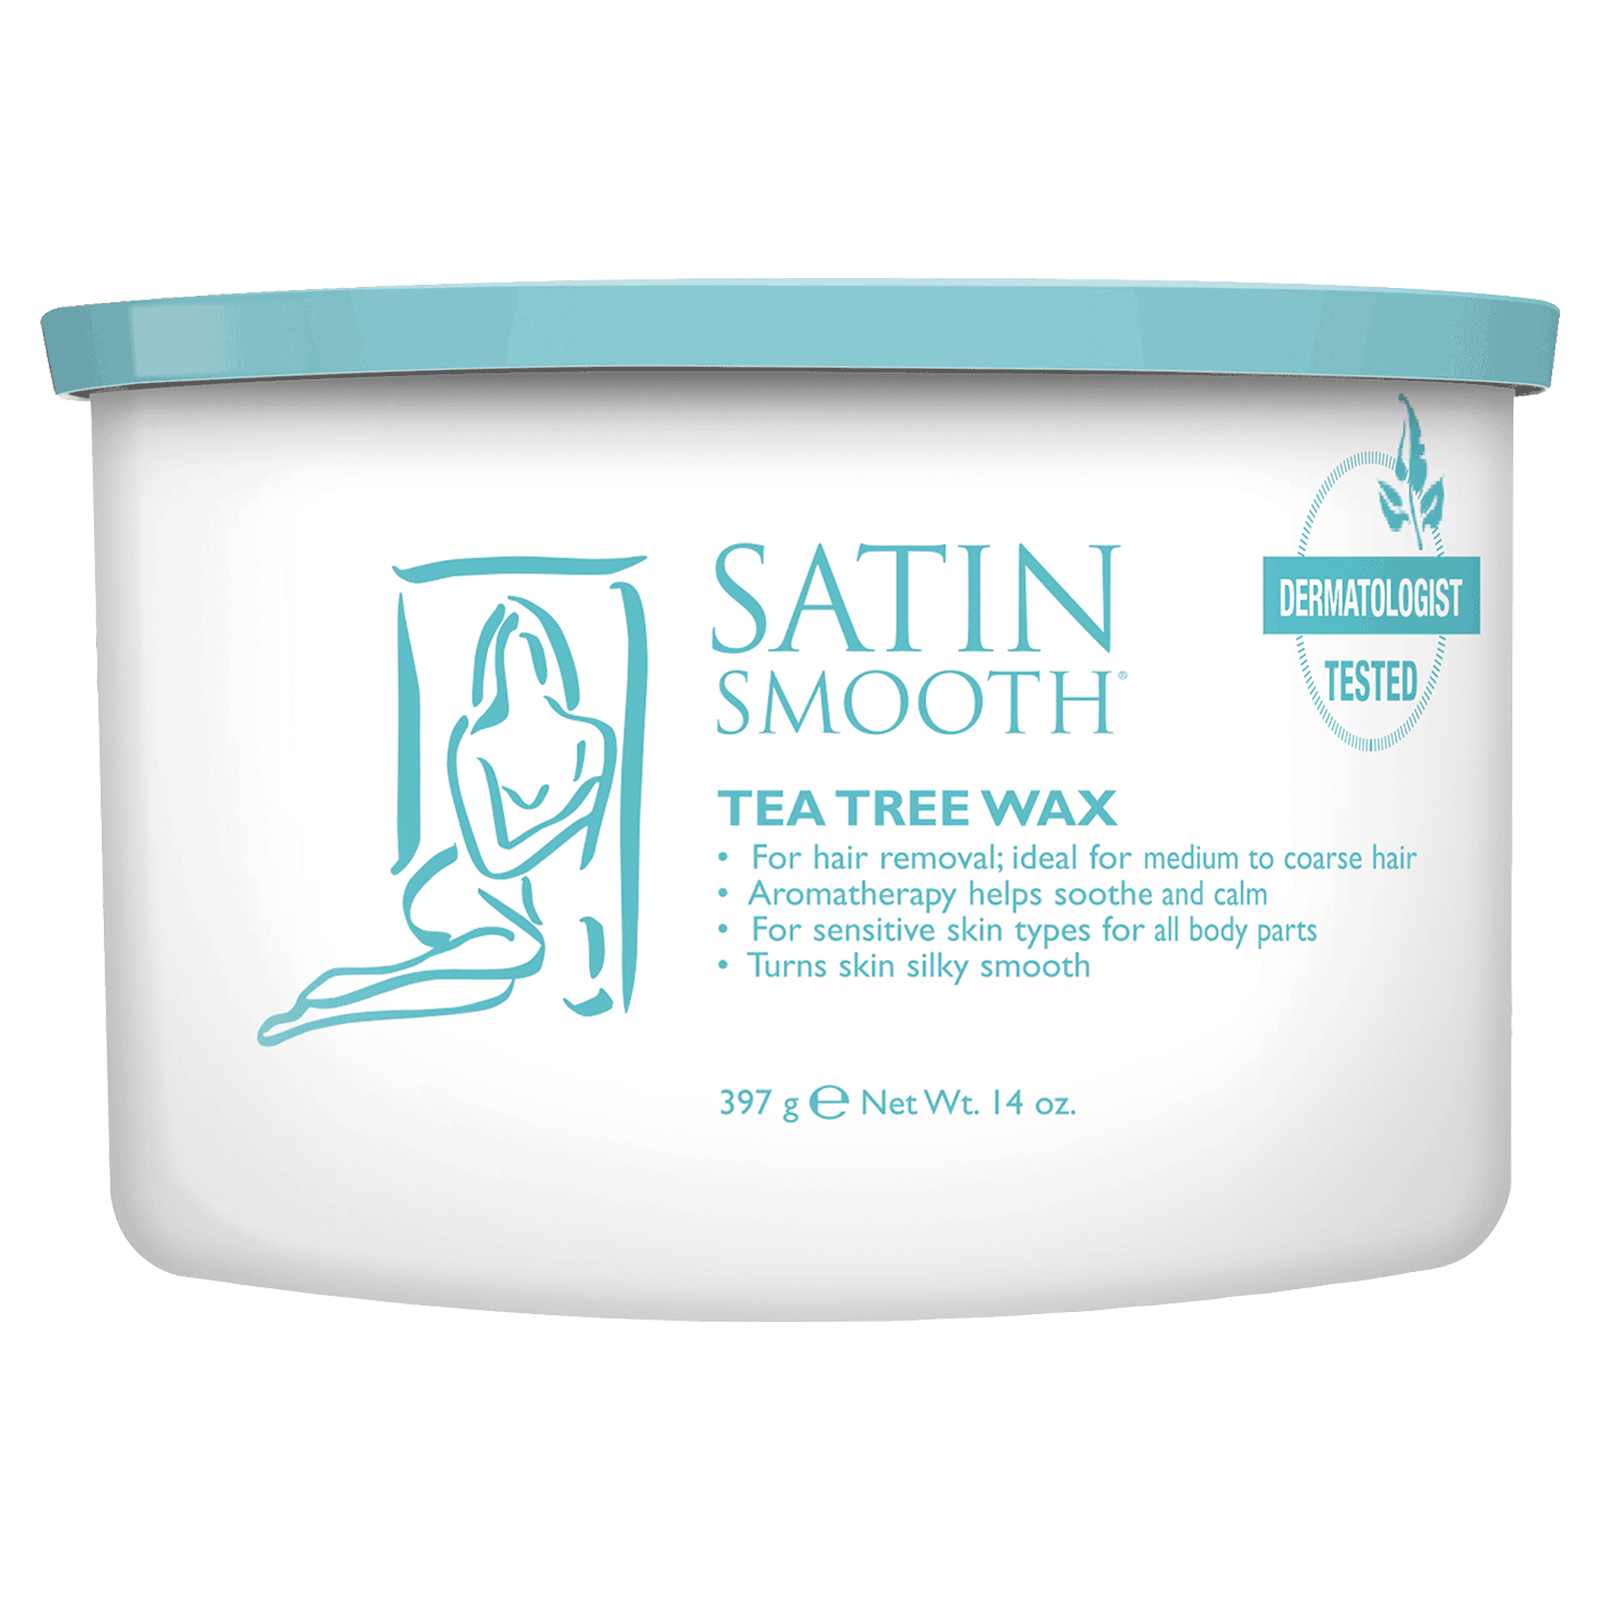 Tea Tree Wax with Eucalyptus